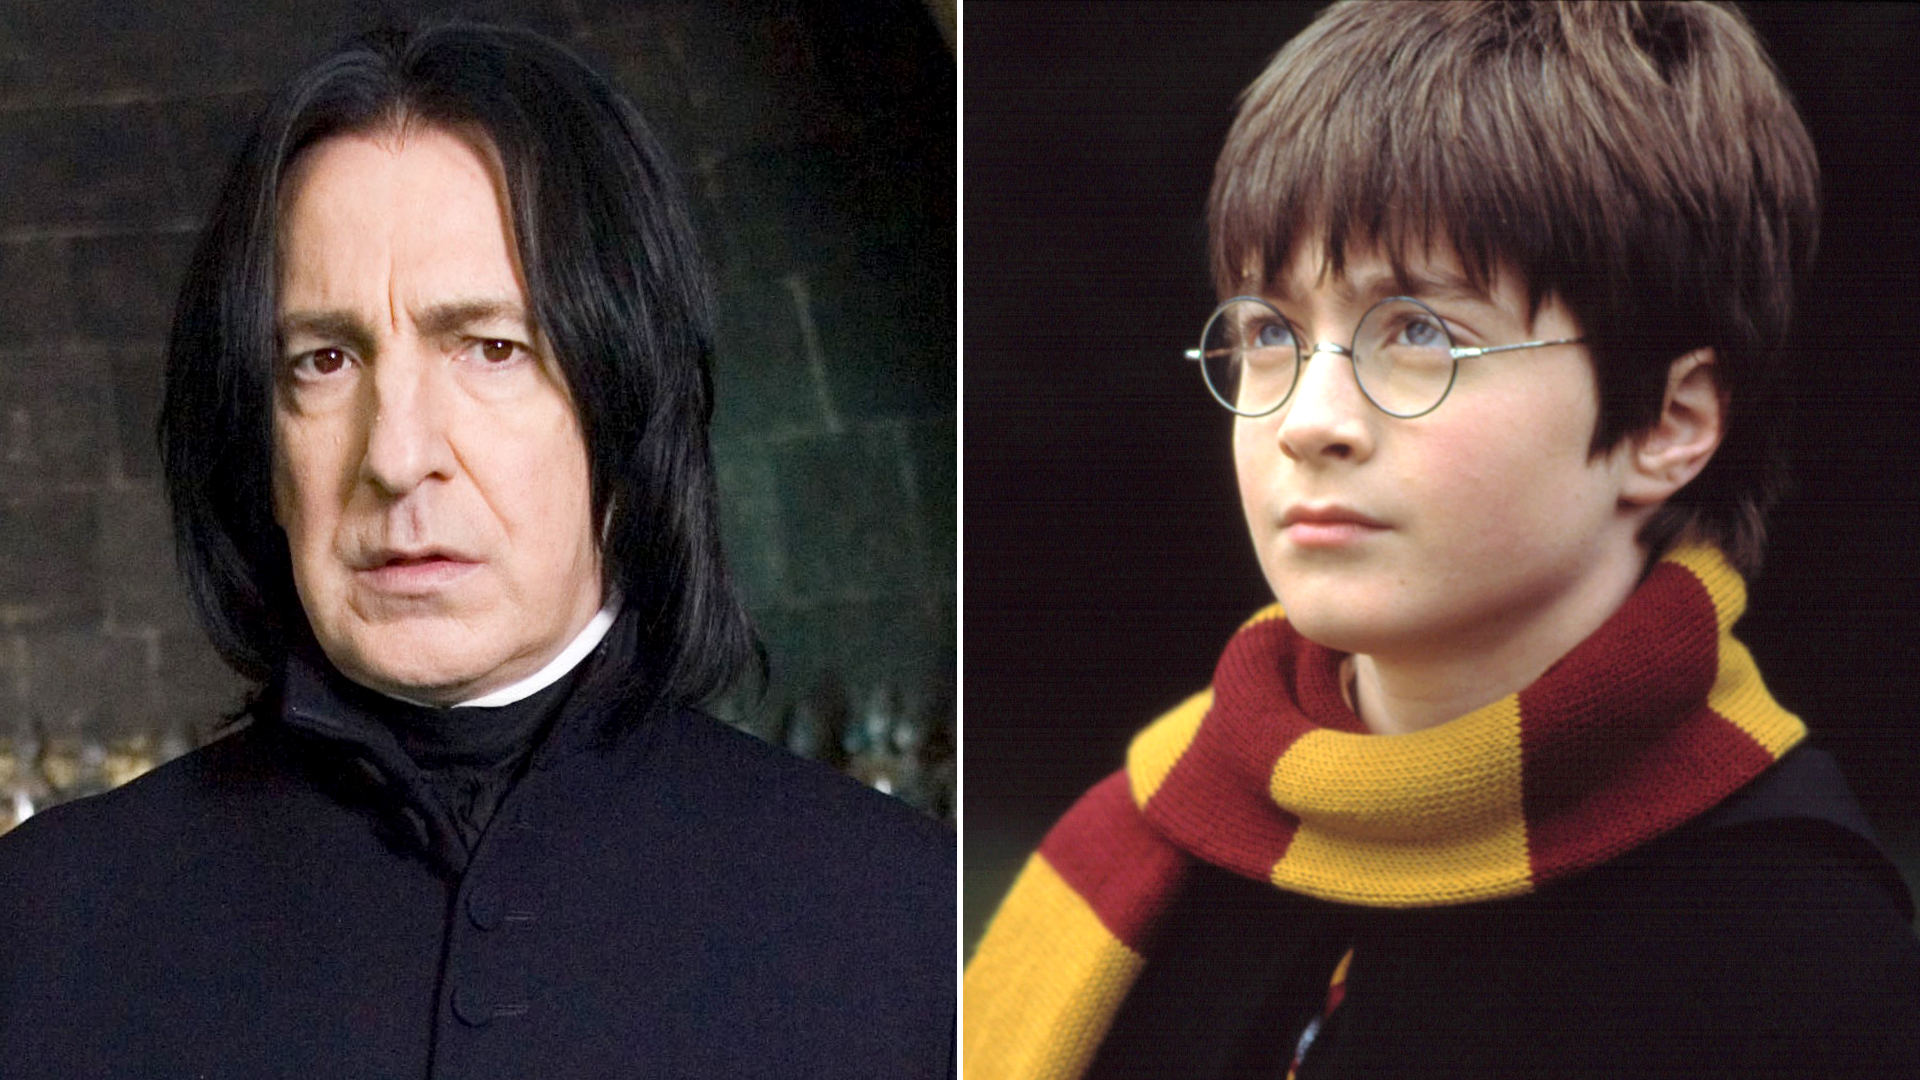 Daniel Radcliffe Shares Moving Post About Alan Rickman S Death